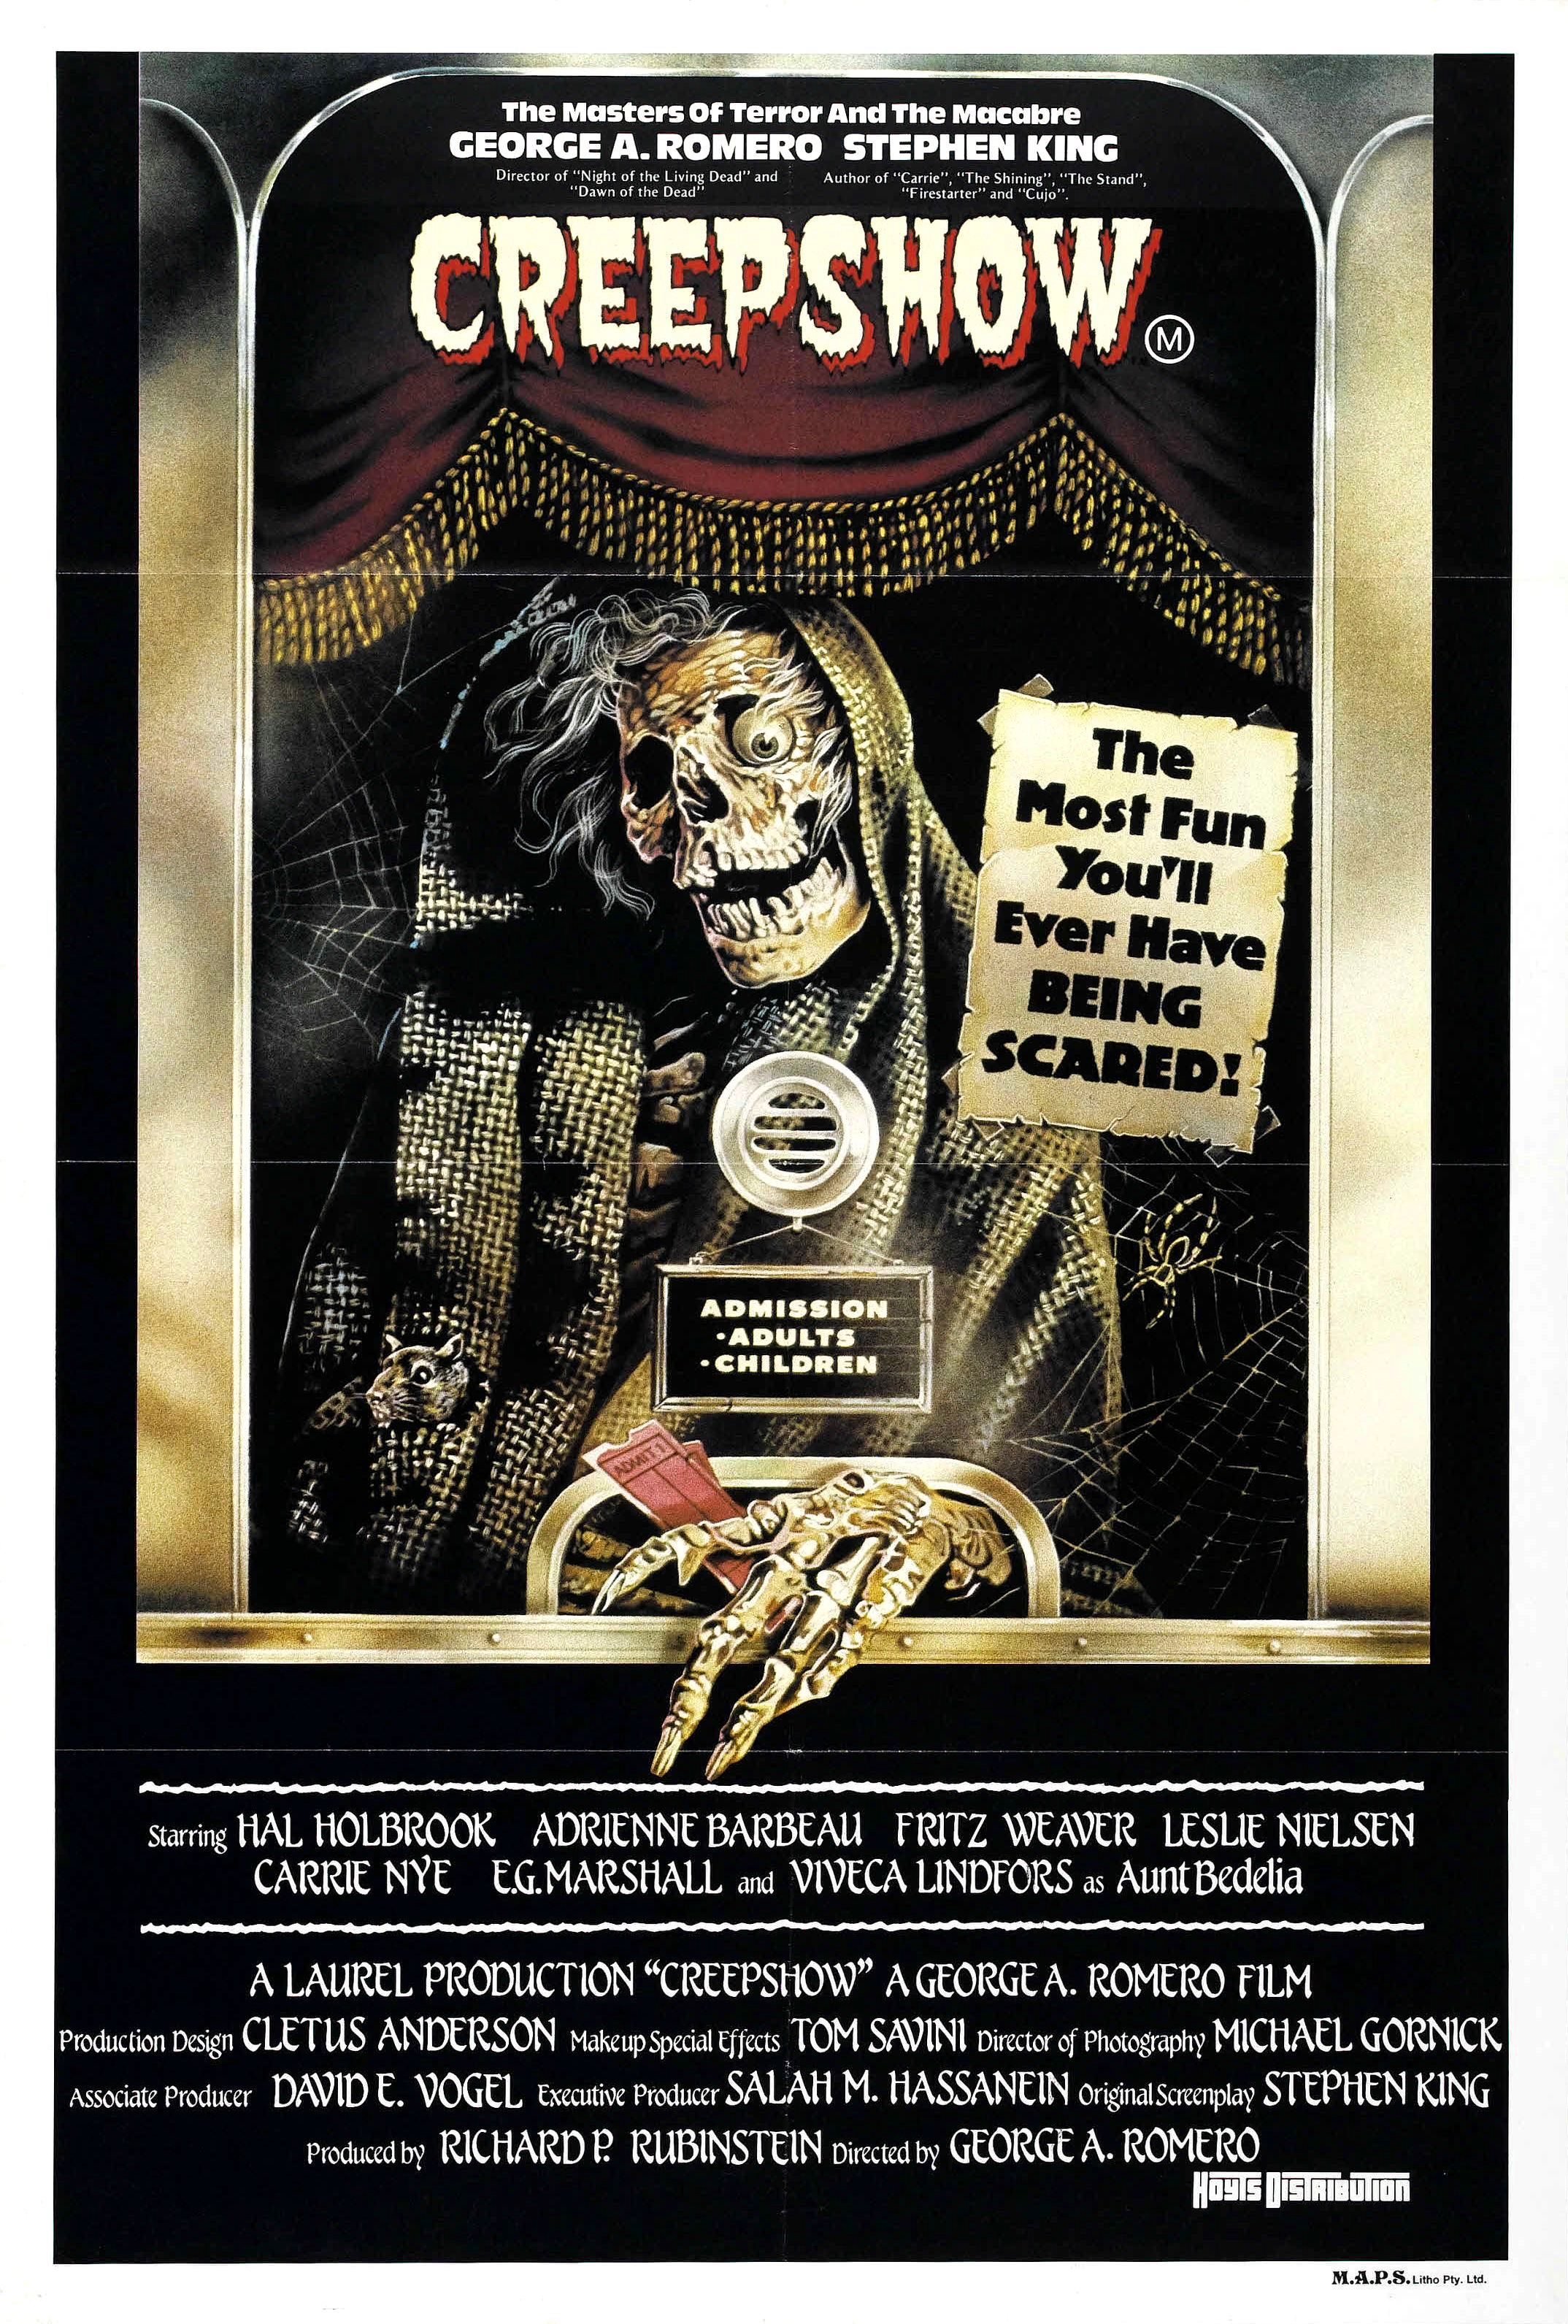 Movie Poster for &quotCreepshow""